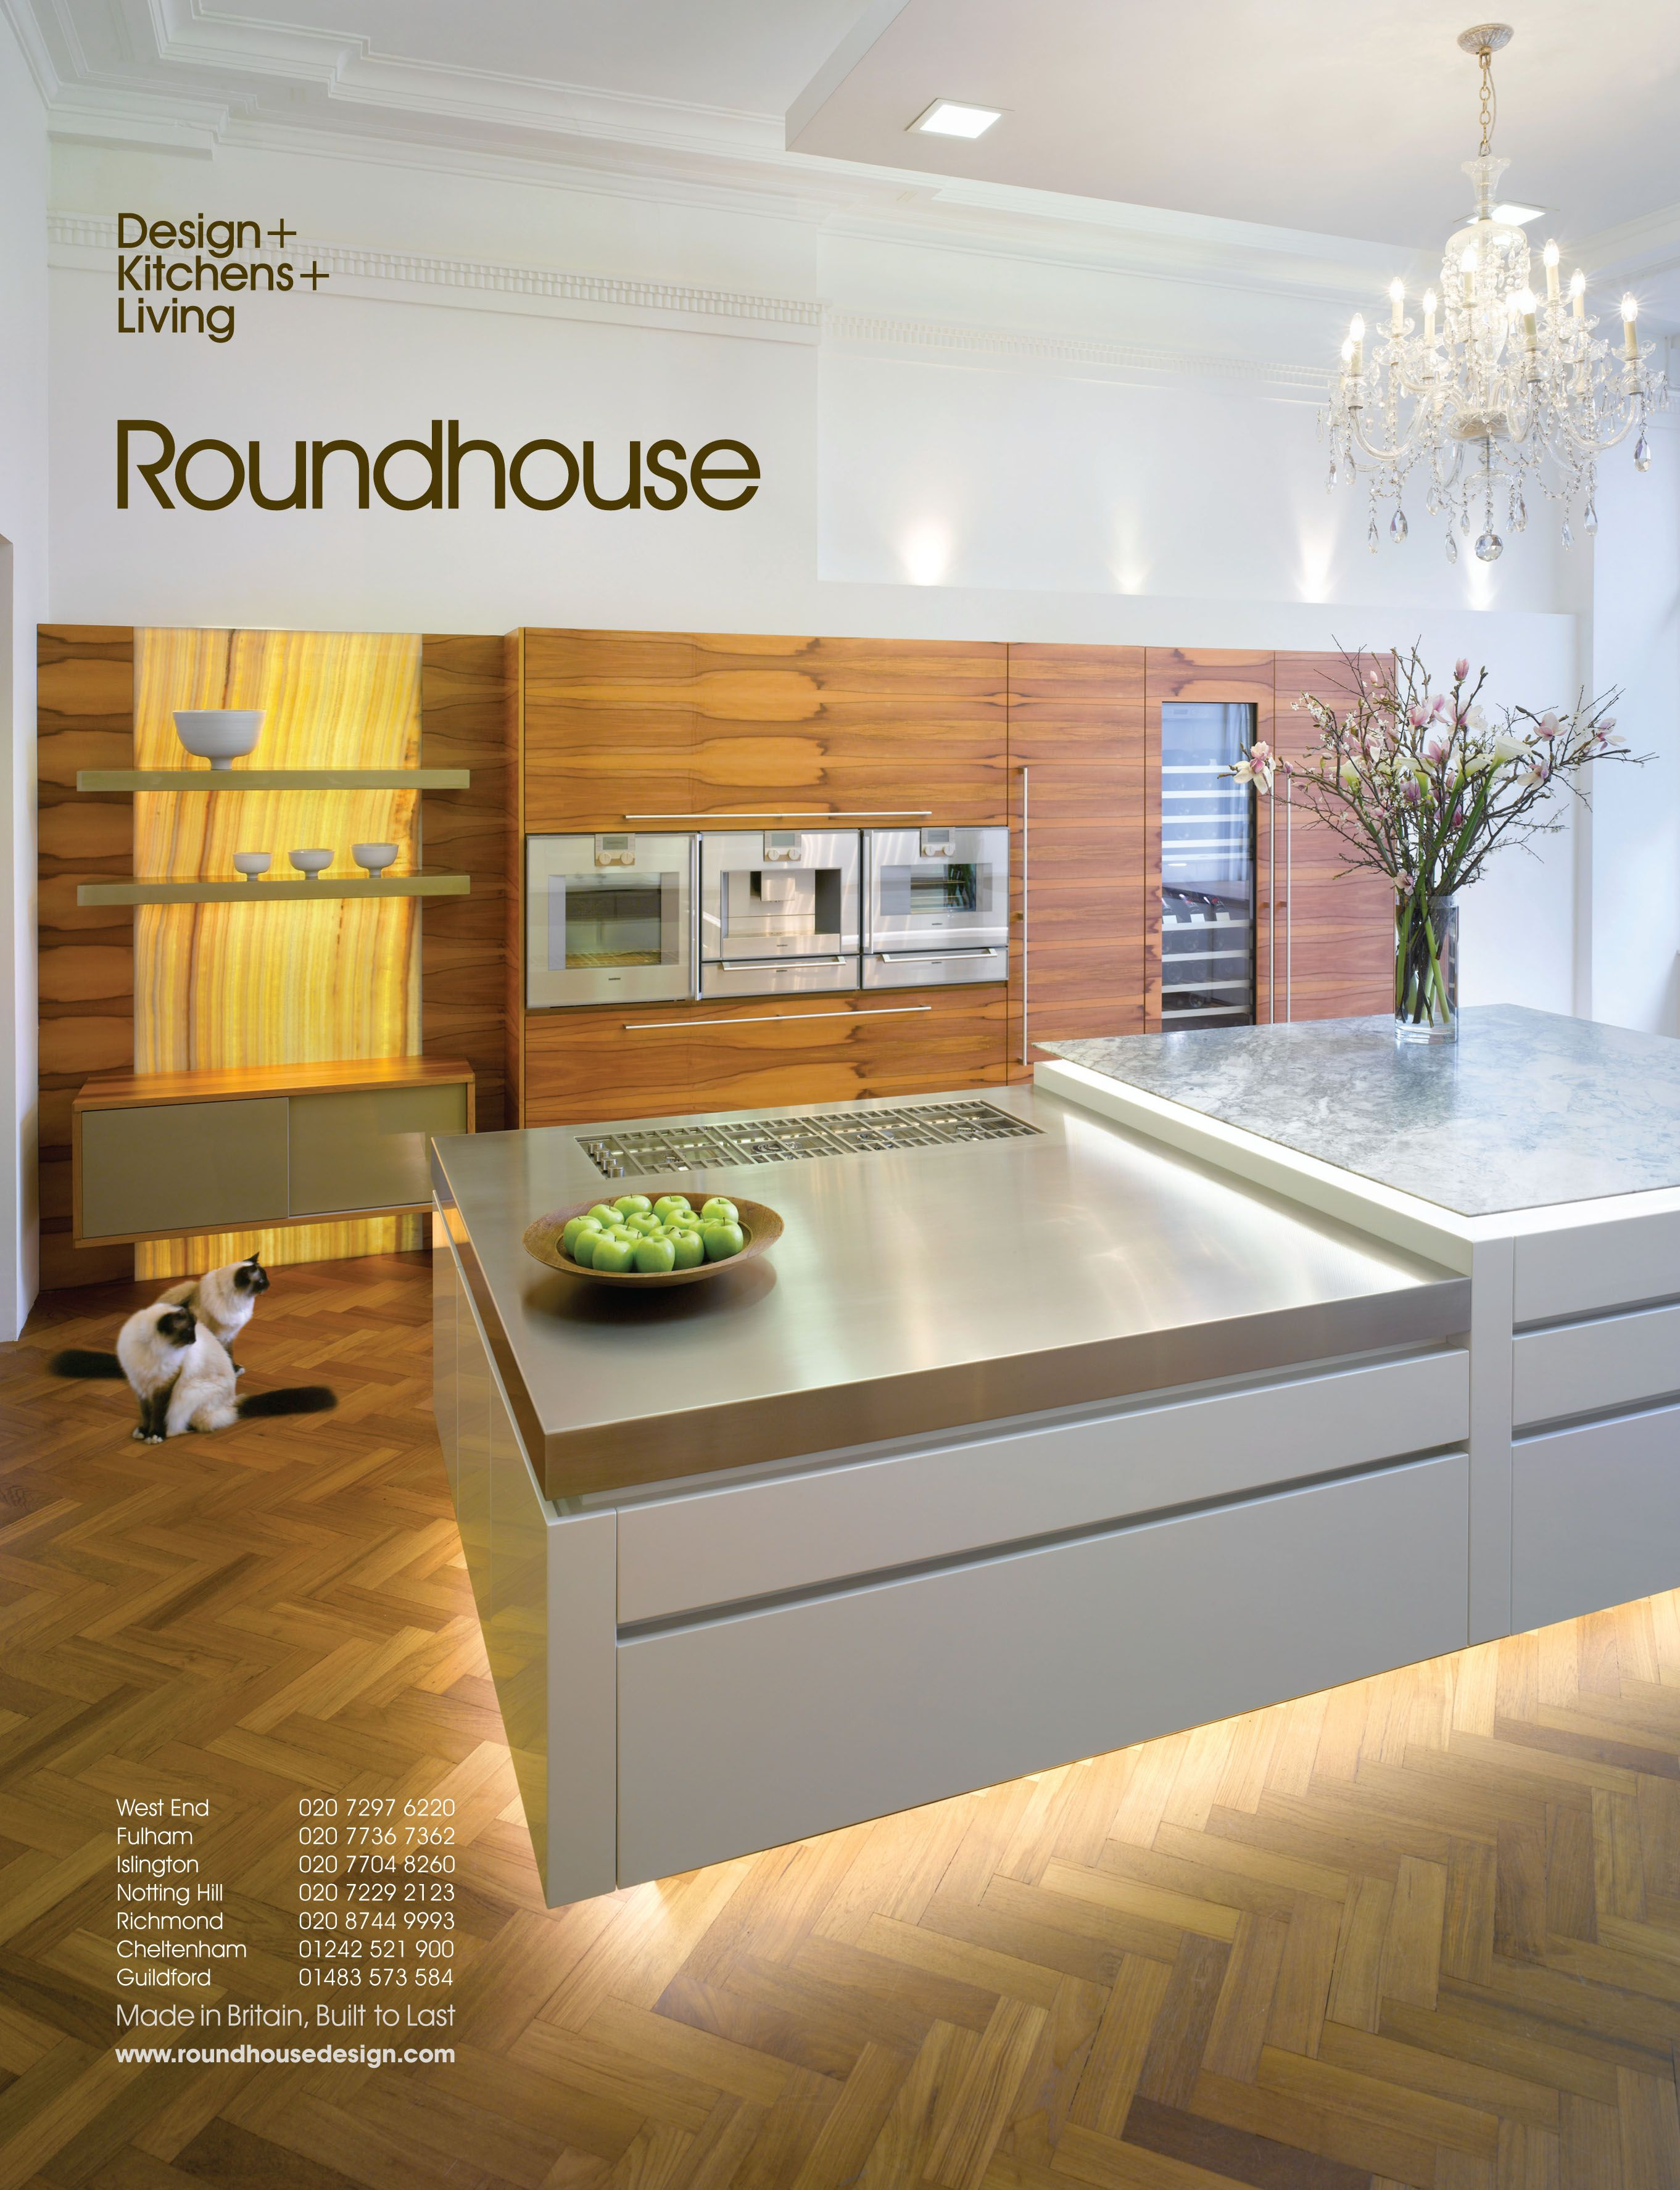 Inspirational Floating islands for Kitchens